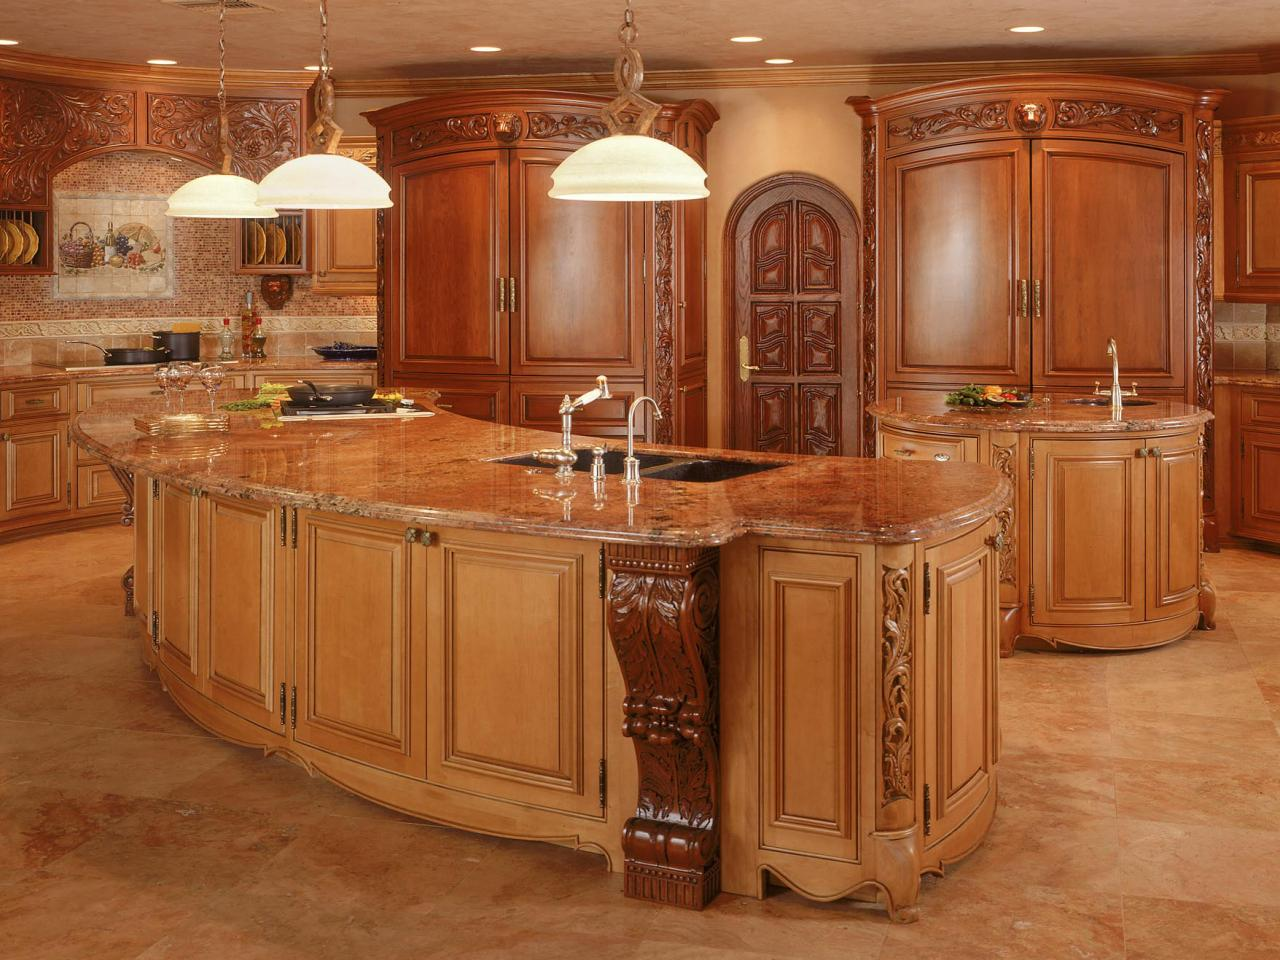 Amazing kitchens kitchen ideas design with cabinets for Edwardian kitchen